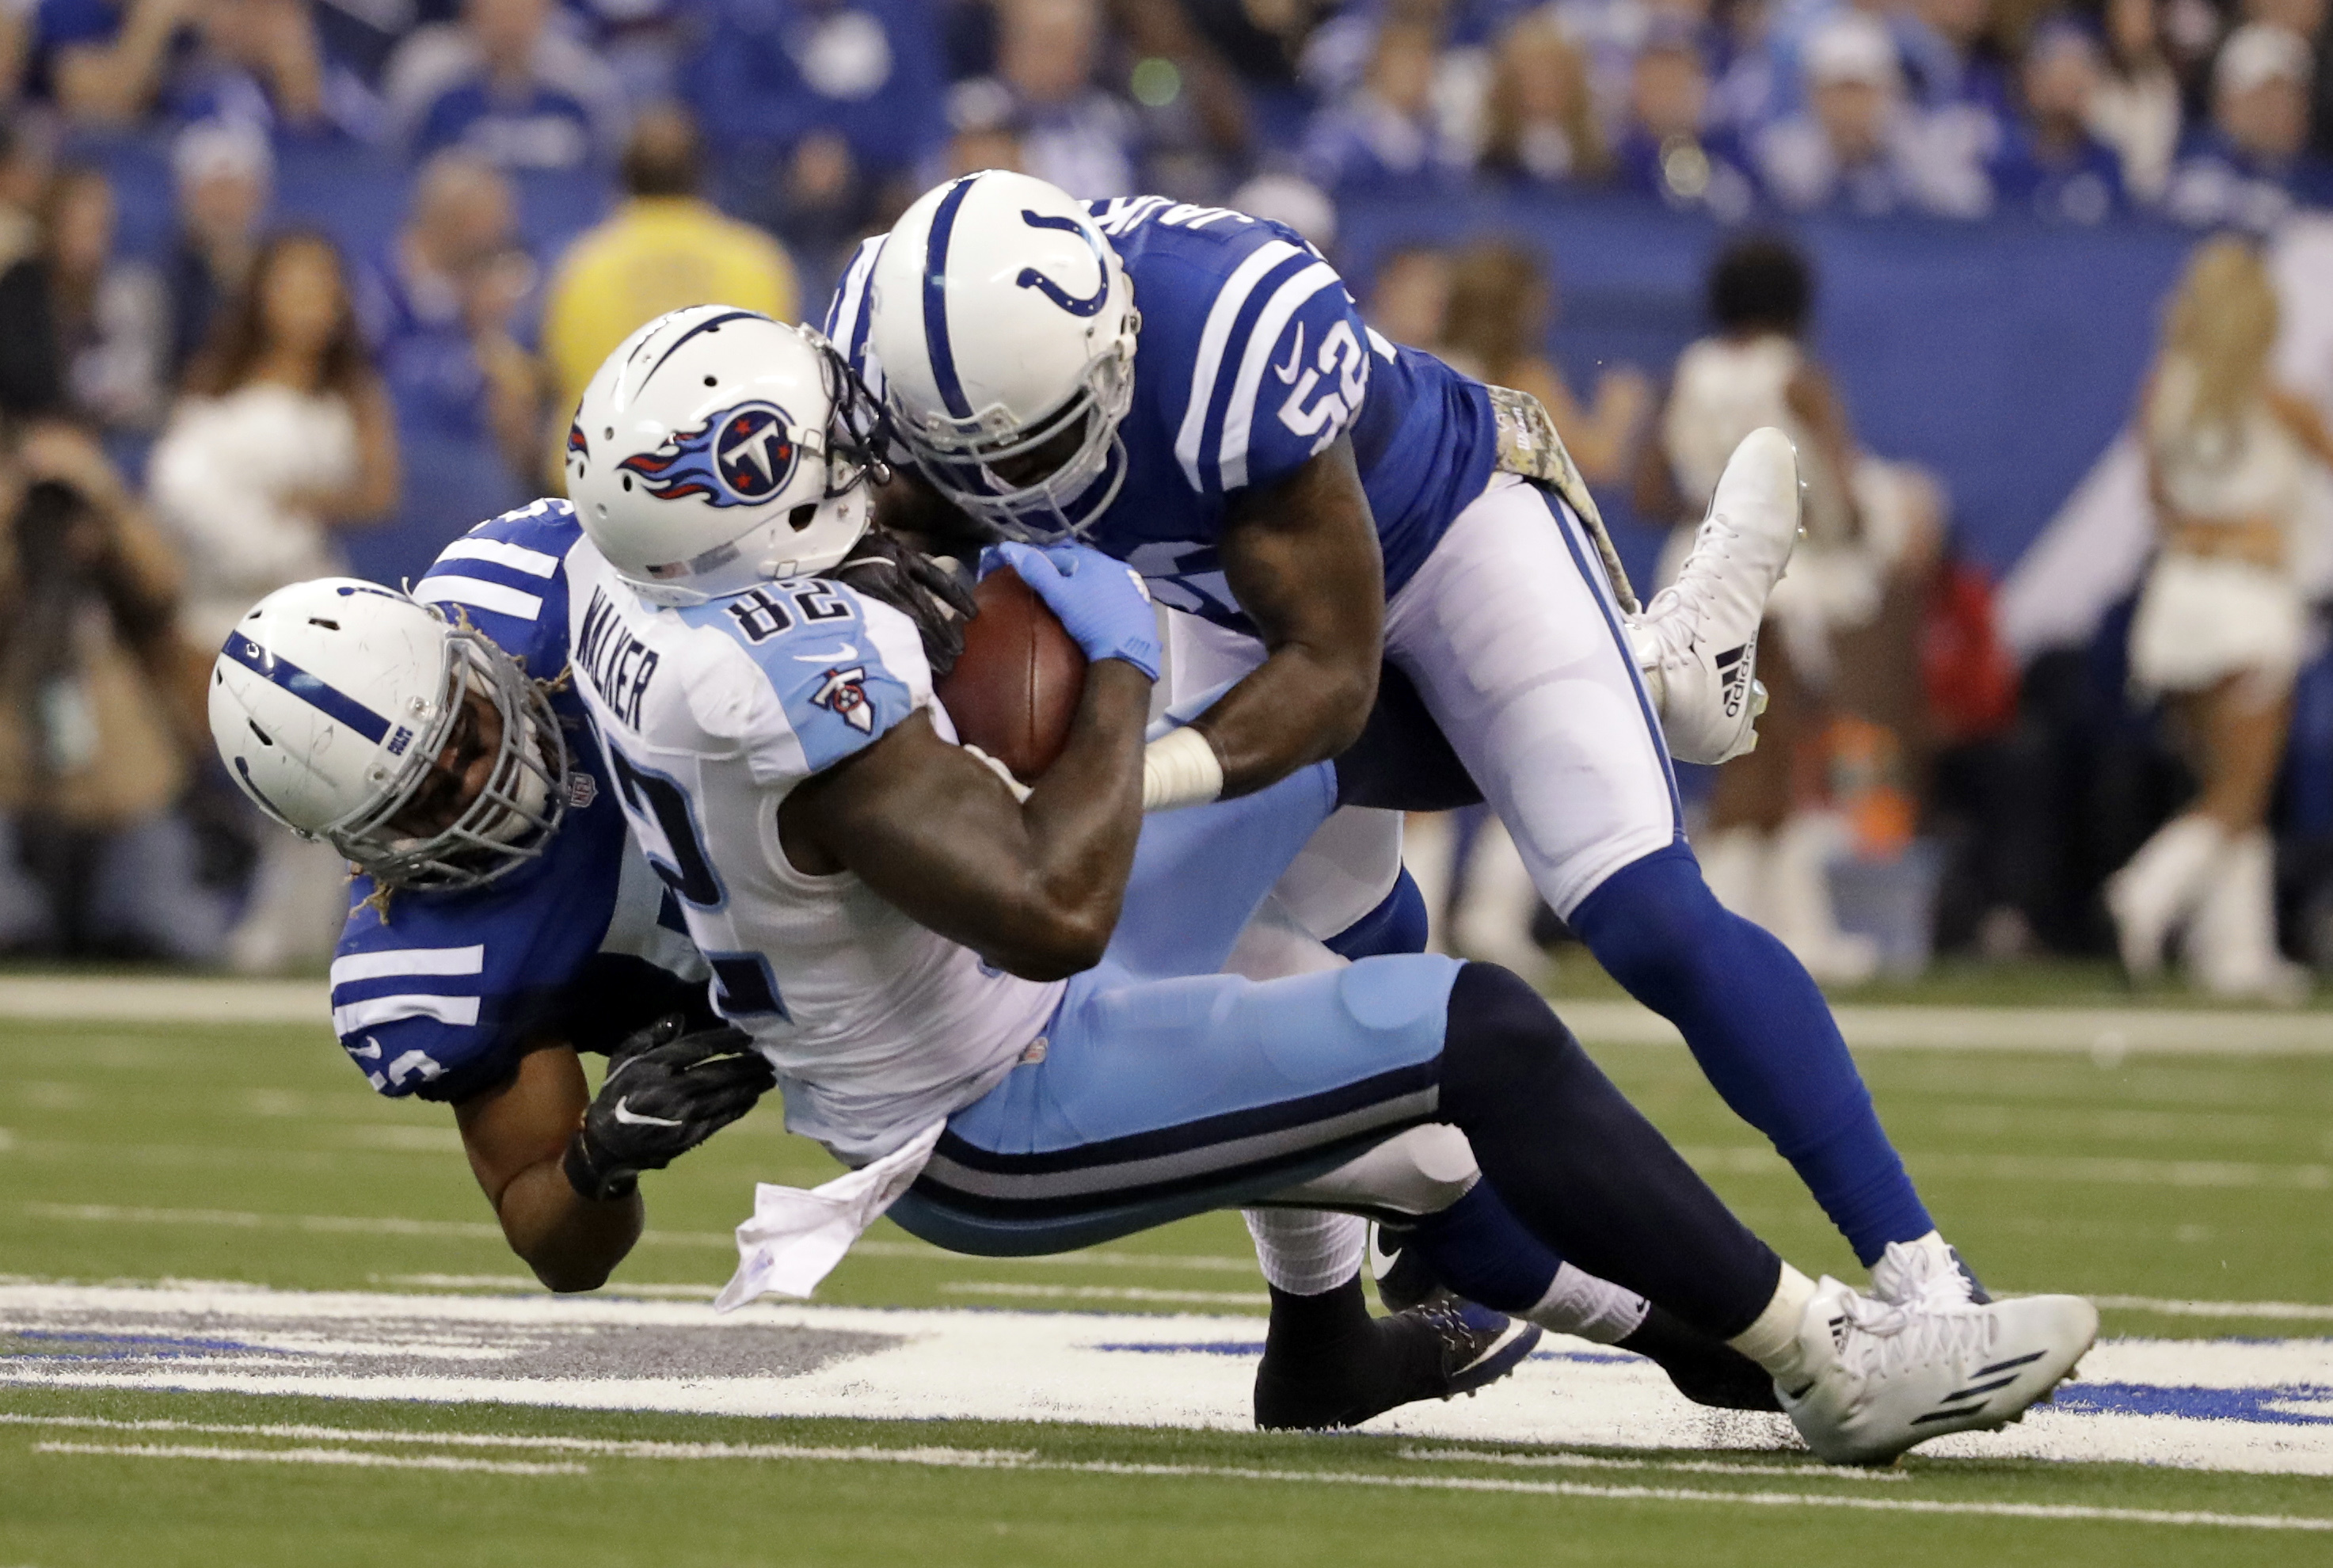 Indianapolis Colts linebacker Edwin Jackson (53) and linebacker D'Qwell Jackson (52) tackles Tennessee Titans tight end Delanie Walker (82) during the first half of an NFL football game in Indianapolis, Sunday, Nov. 20, 2016. (AP Photo/Jeff Roberson)